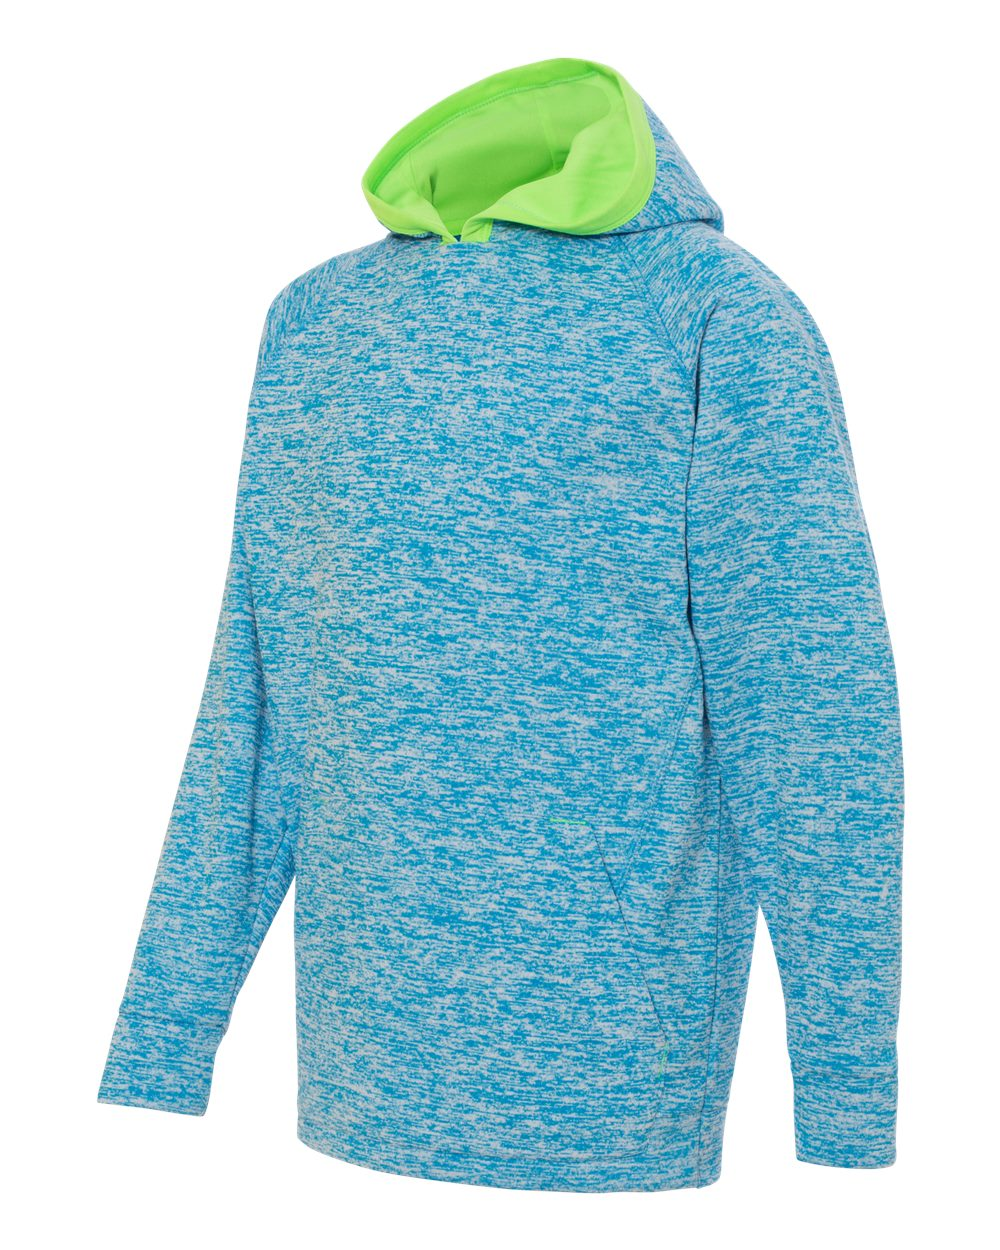 click to view Electric Blue/ Neon Green